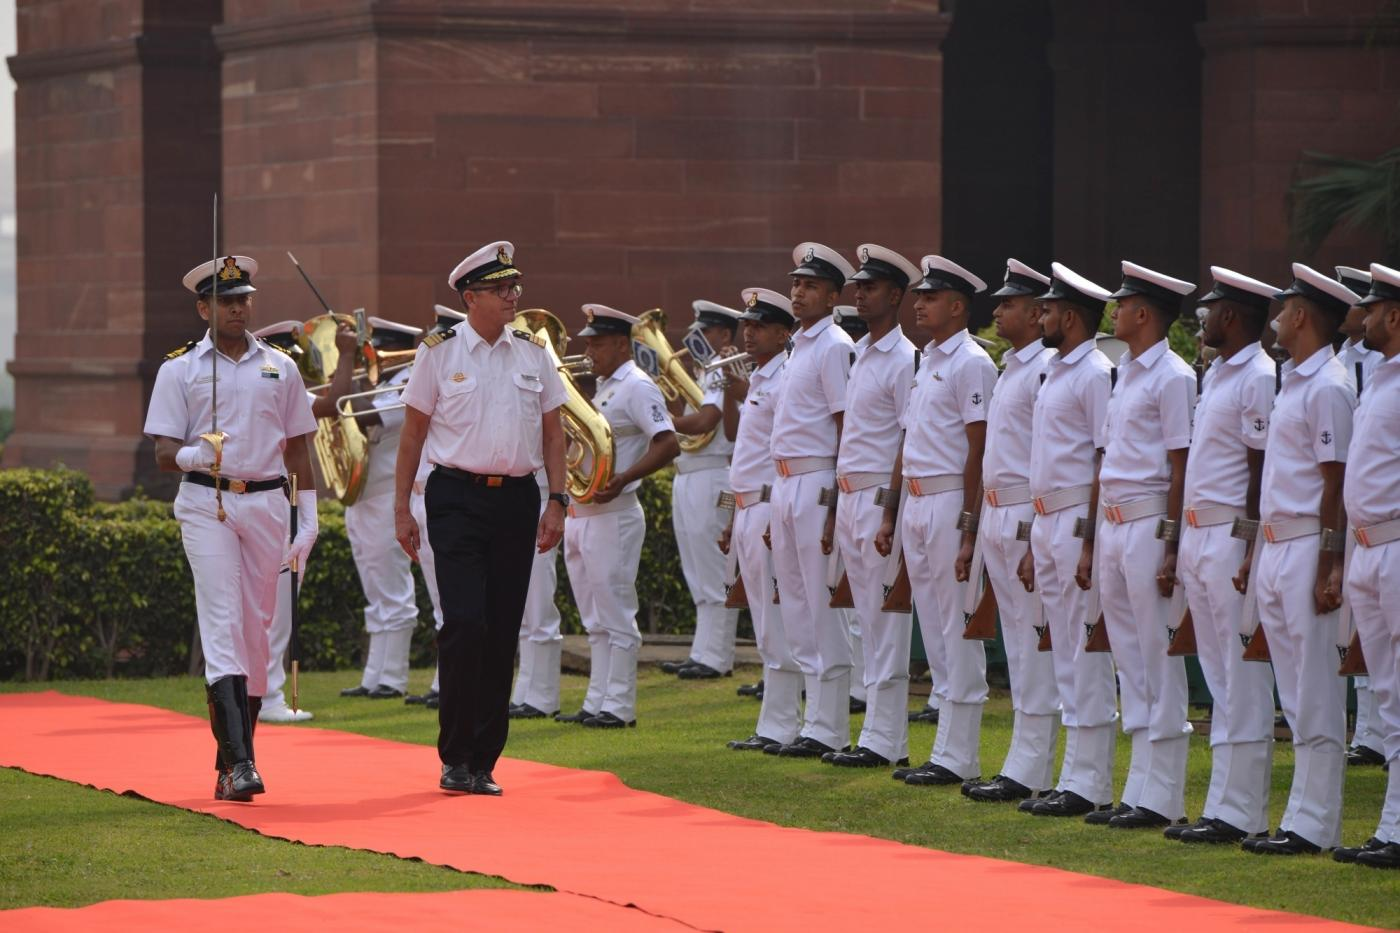 New Delhi: German Navy Chief Vice Admiral Andreas Krause inspects the Guard of Honour in New Delhi, on Oct 18, 2018. (Photo: IANS) by .